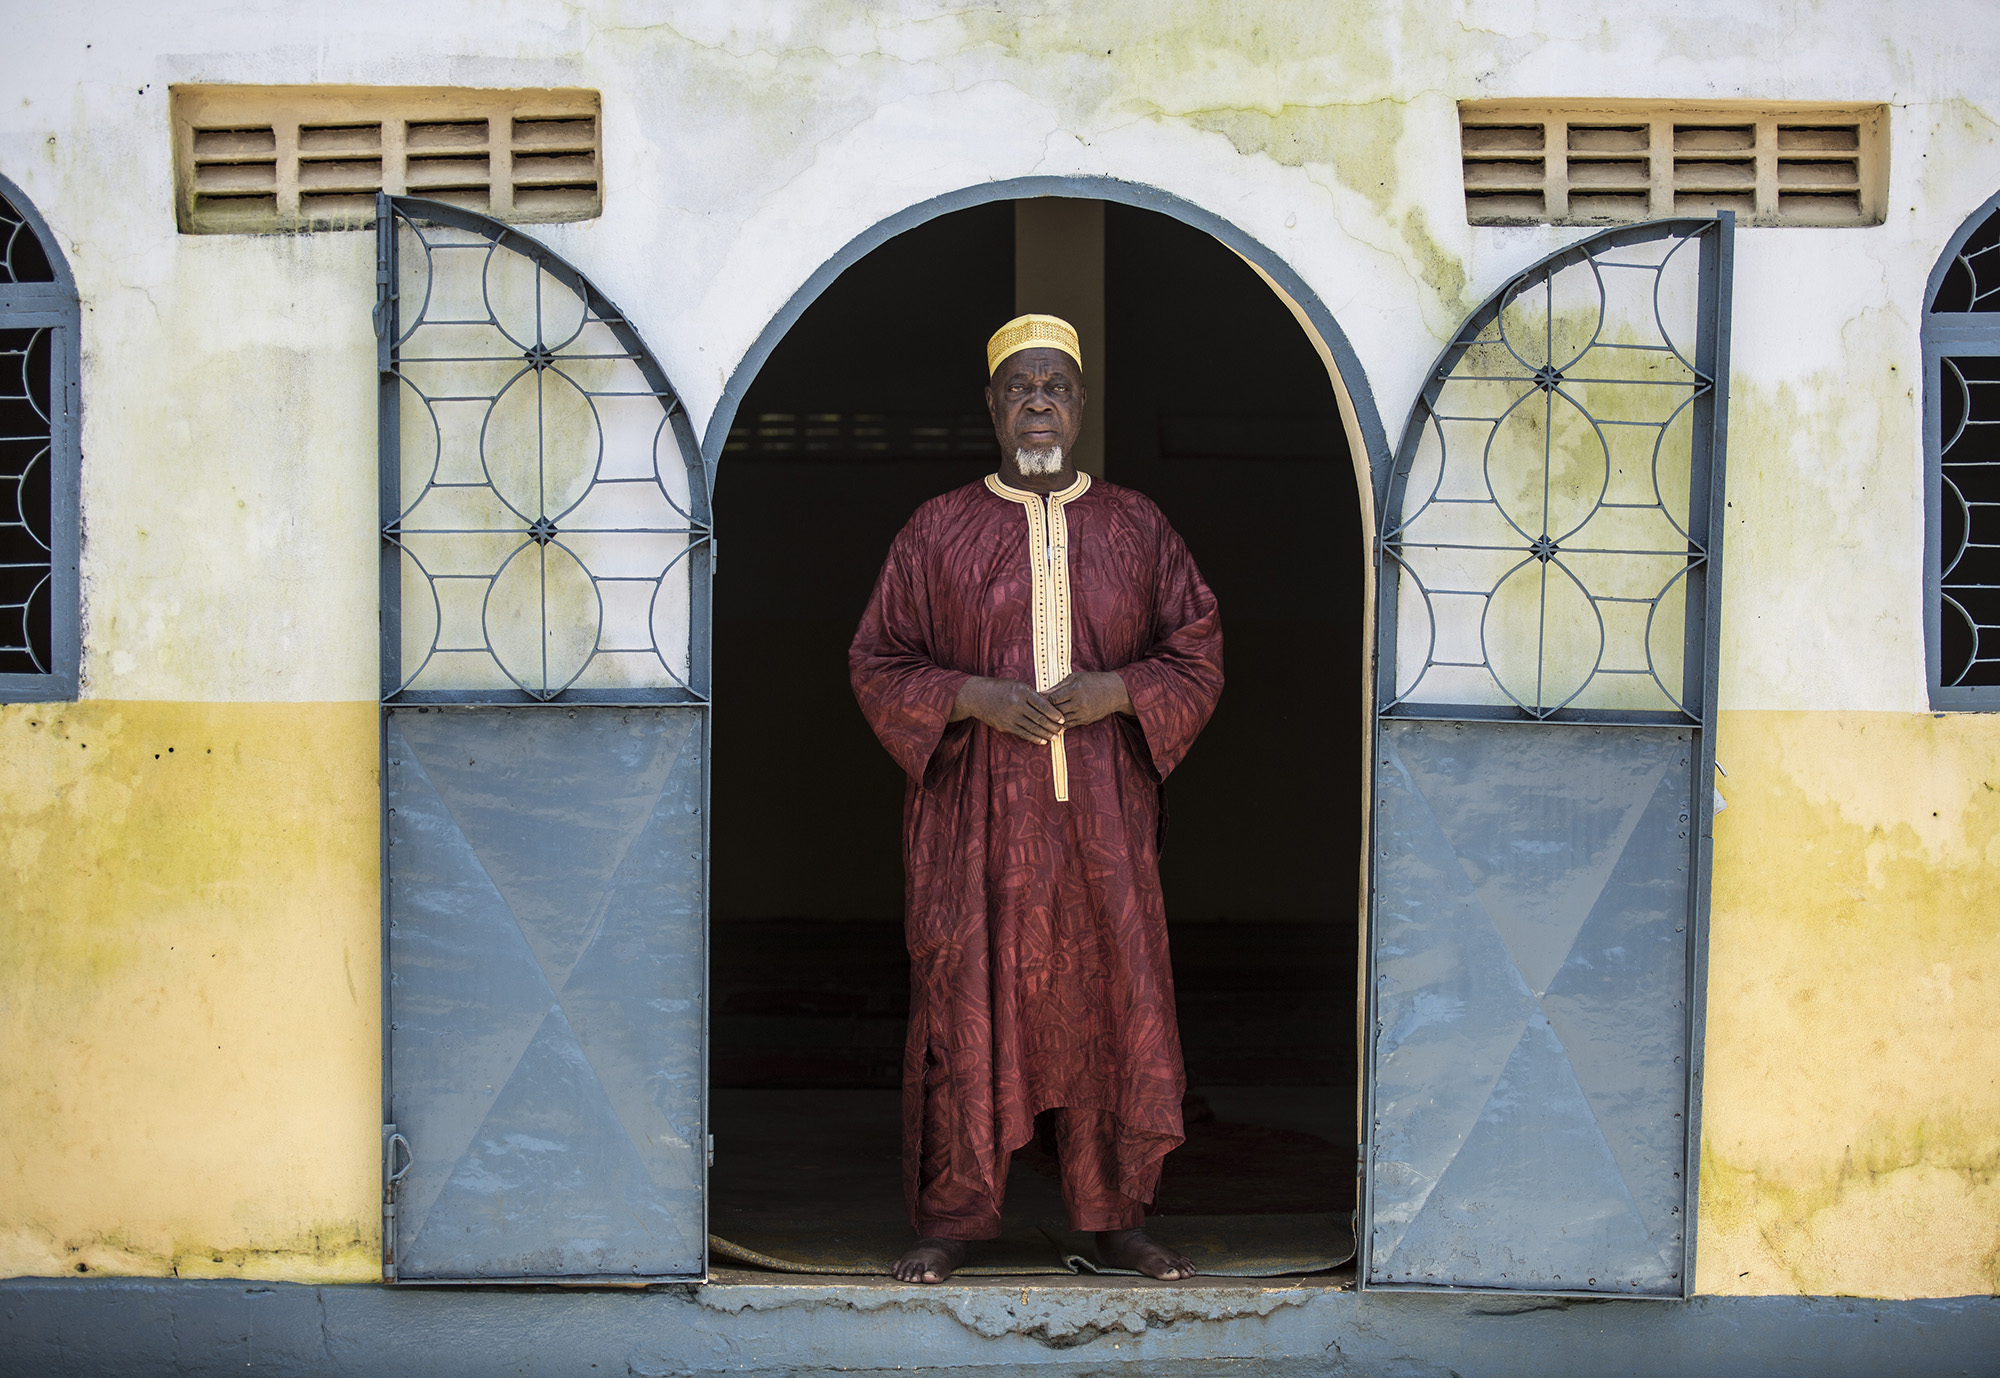 """CONAKRY, GUINEA: Imam Elhadj Cheikhouna Sylla has been an Imam for 40 years. Since the beginning of the Ebola outbreak he believed the rumors about the disease were true because there were so many stories about the diseases in the Koran. He was educated on Ebola by UNICEF and The Islamic Center. After this, he gave more than 20 speeches at the mosque to convince people that Ebola was real. He knew how important his role was since the beginning. He did his best in the community to promote safe burial. At his mosque, he was the one with the key. In the beginning, people wanted to give their loved ones who died of Ebola a proper funeral and burial at the mosque. He had to convince the community members that they could not do this unless they first contacted the Red Cross to prepare the body. Once completed, an authorization letter would be given to the family to proceed with a funeral. Once received, the Imam was able to allow the service at the mosque. He says, """" I knew I was impacting the community because they accepted to bring the paper delivered by the Red Cross and communities accepted the Red Cross to attend the burial. I witnessed two things. They took me and brought me to the Ebola Treatment Center (ETC) to see people who were sick with the disease. So this strengthened my belief with Ebola's existence. When there is a case in the community, I would sometime be called to go talk to the family members about taking the person to the ETC or about safe burial if they died. """"I was feeling sad for the families but am here to support them and to use the word of the holy Koran to help them. """" He said his advice to help use his own experiences to help convince community members that Ebola was real. Laughs...There are too many wishes that I have for Guinea. Ebola has affected the way communities have been living together and my hope is that there is more peace in the country. I wish for my country to get a good leader. Photo by Sarah Grile"""